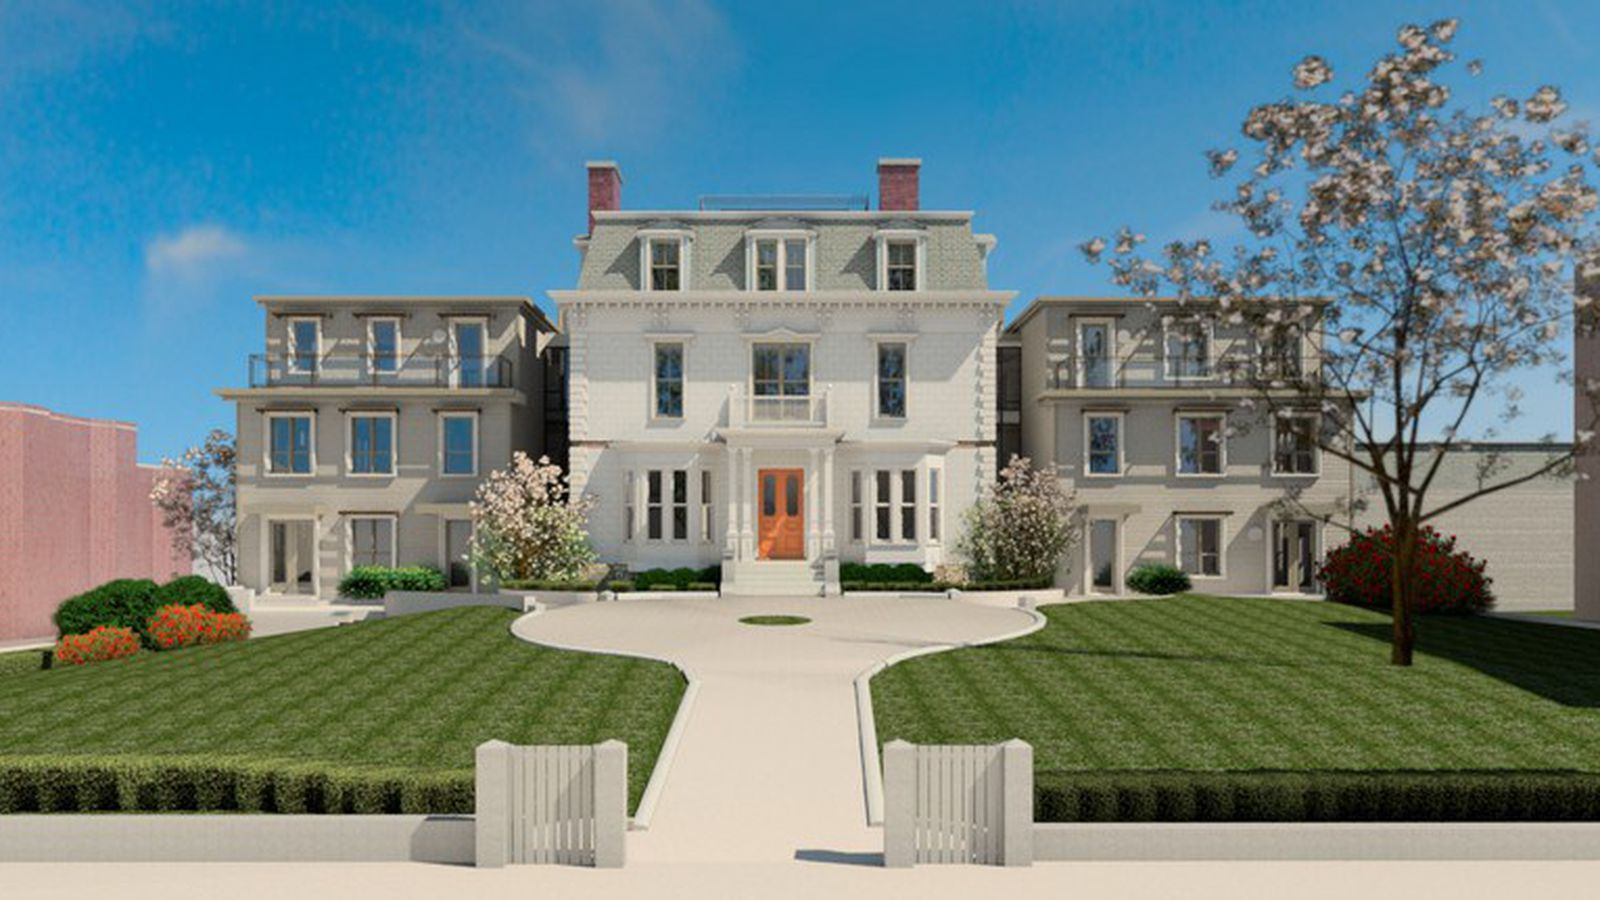 South Boston S James Collins Mansion Conversion Complete